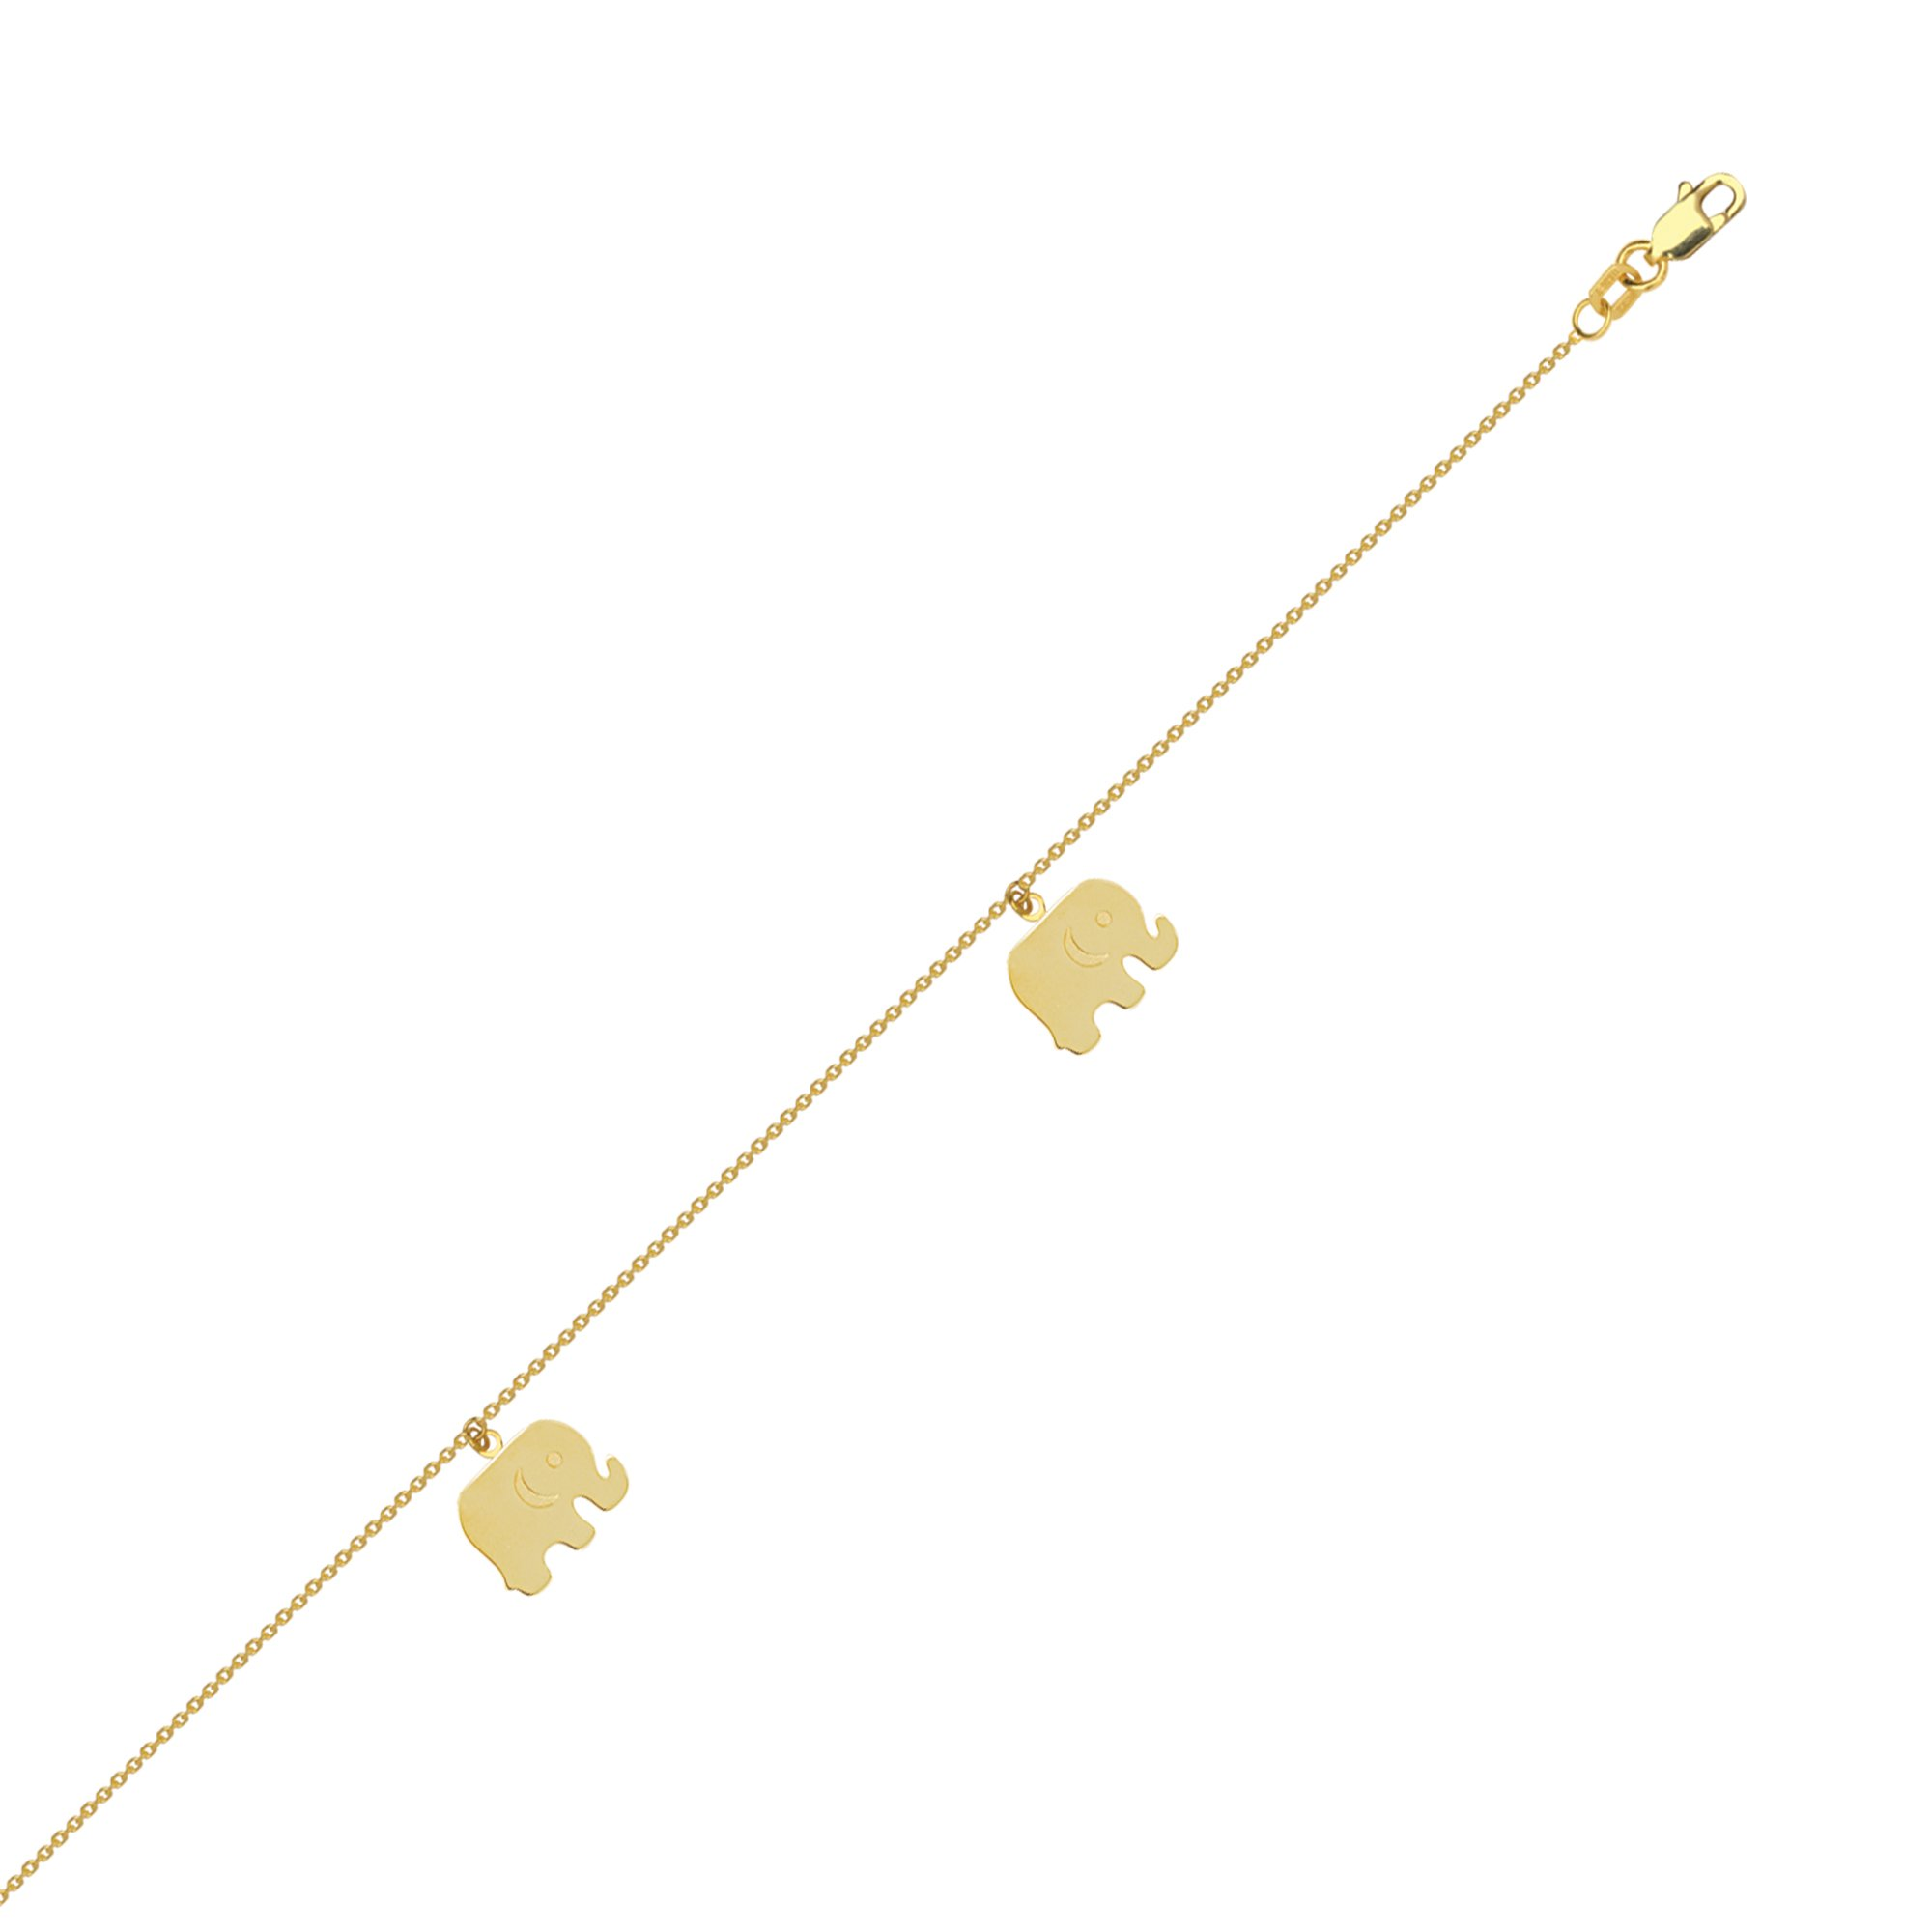 Anklet 14k Yellow Gold Adjustable Length with Elephant Dangles